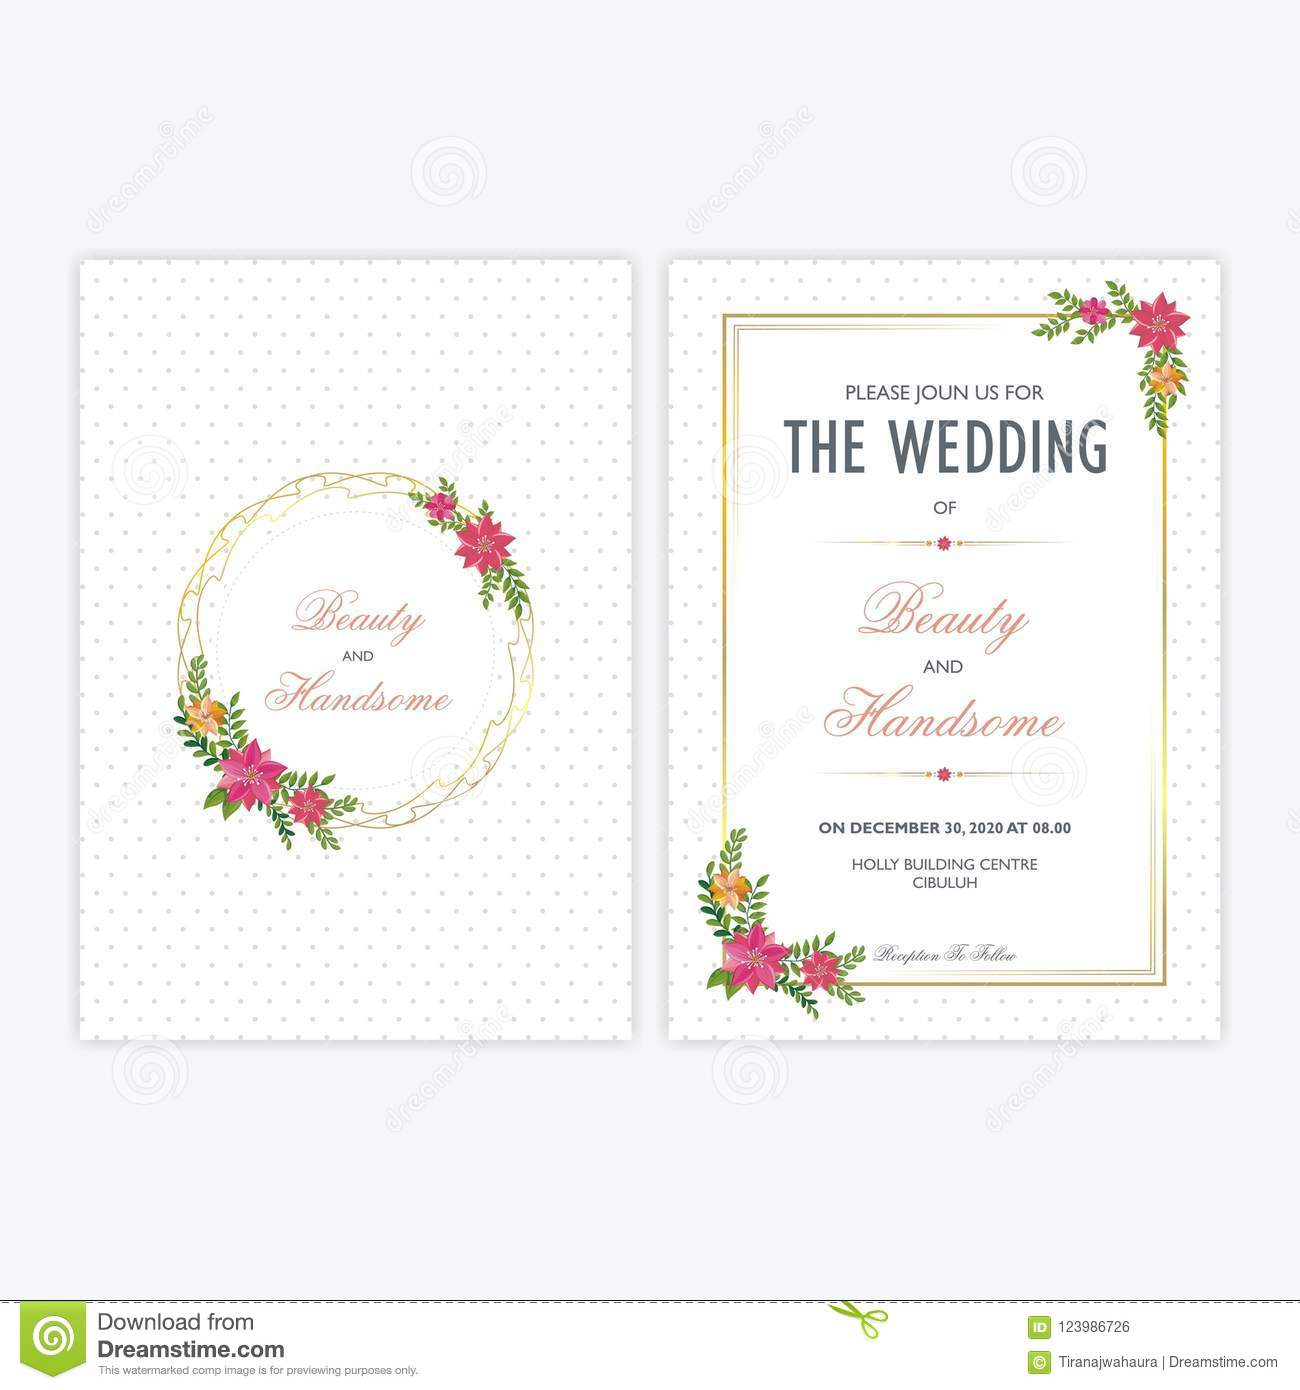 Trendy Wedding Invitation Cards: Wedding Invitation Card With Floral Ornaments Stock Vector